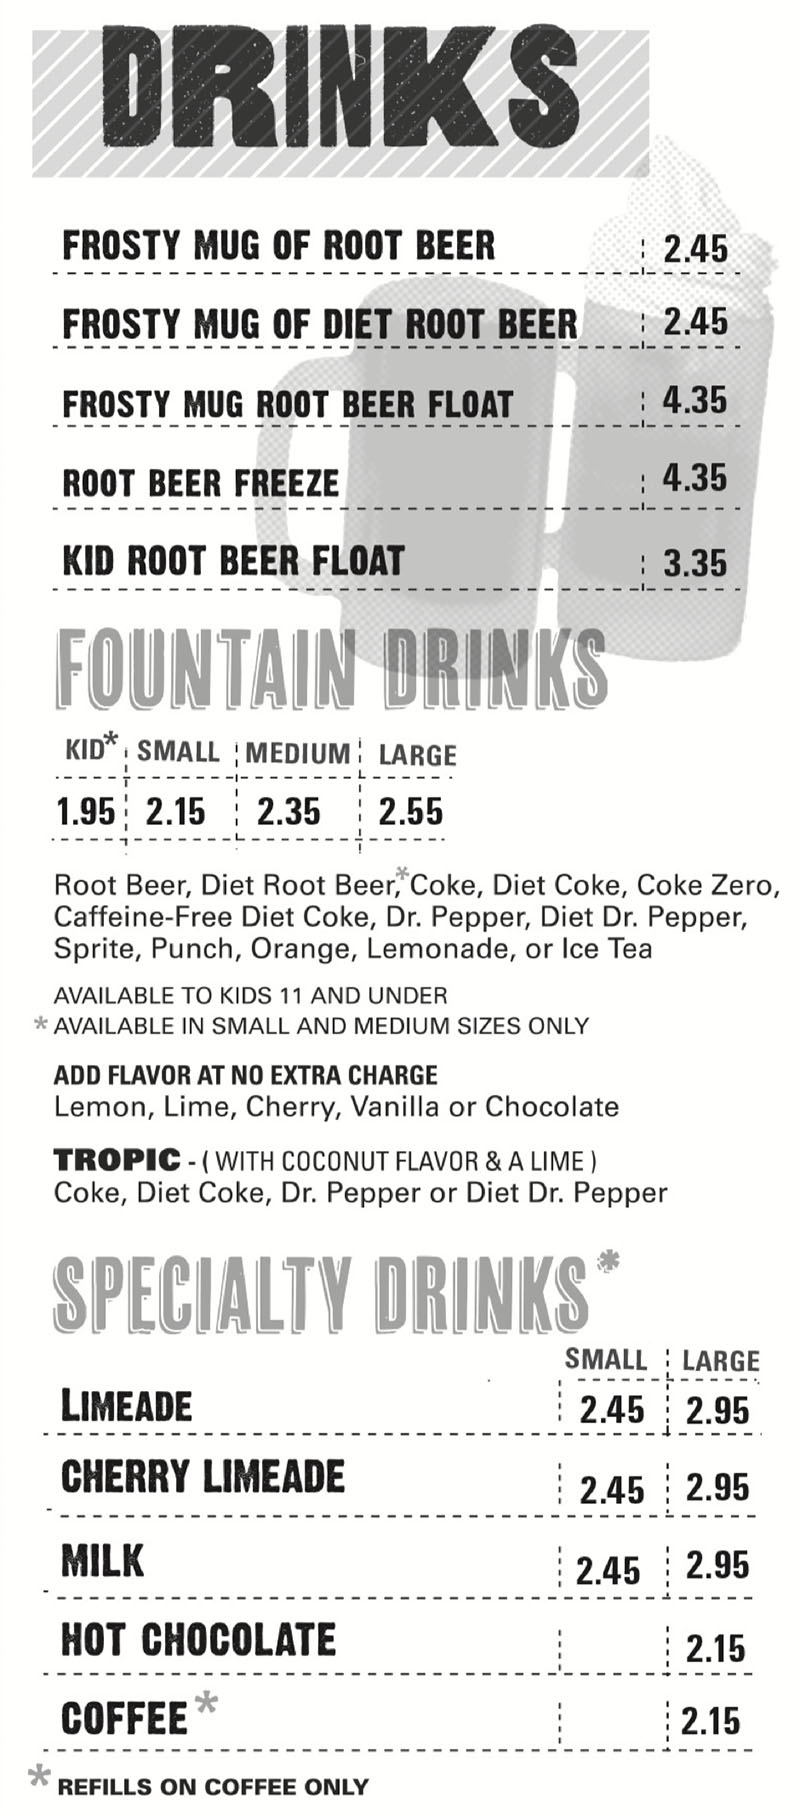 Hires Big H menu - drinks